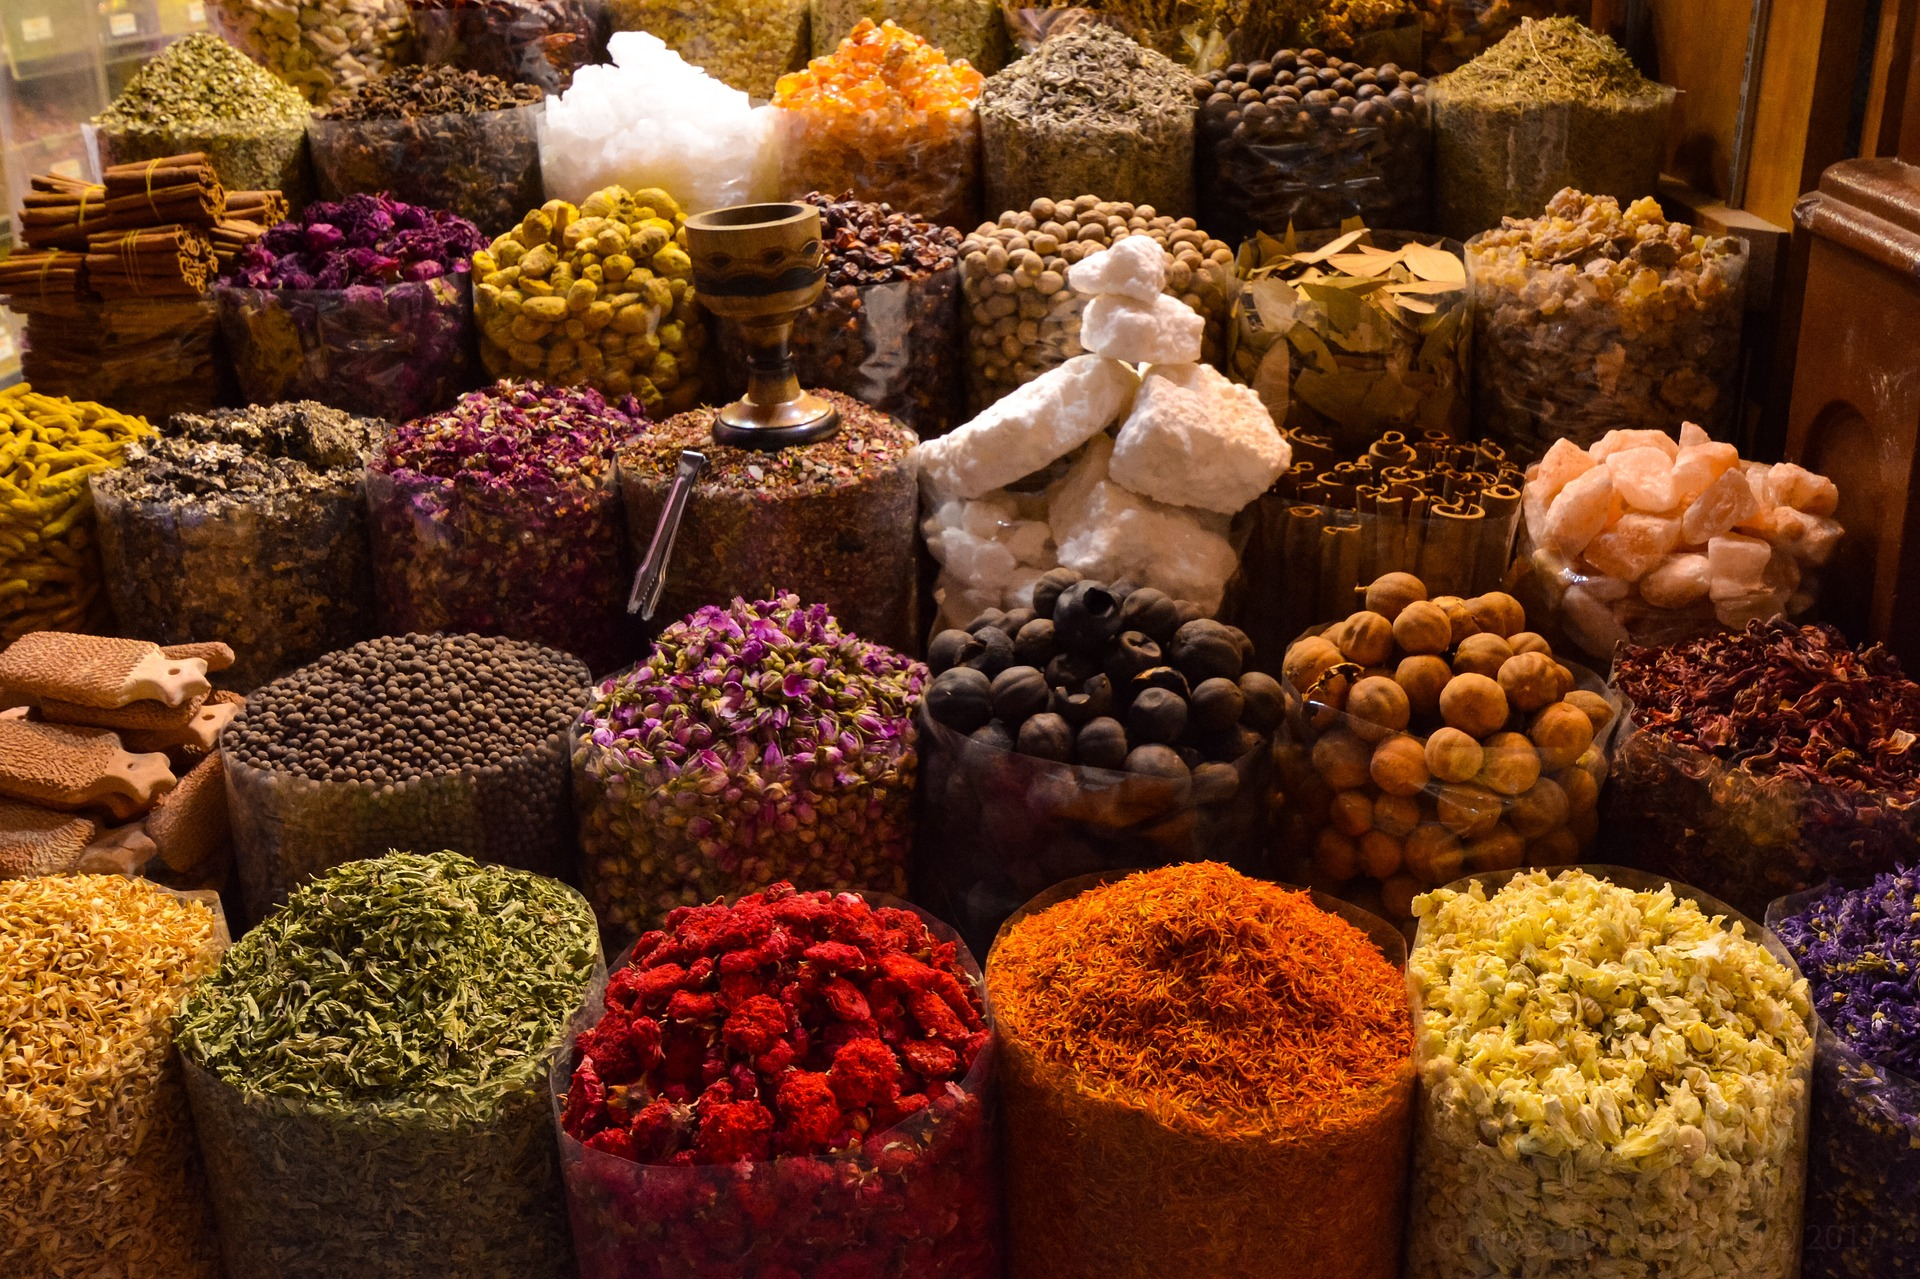 An array of colourful spices and herbs.